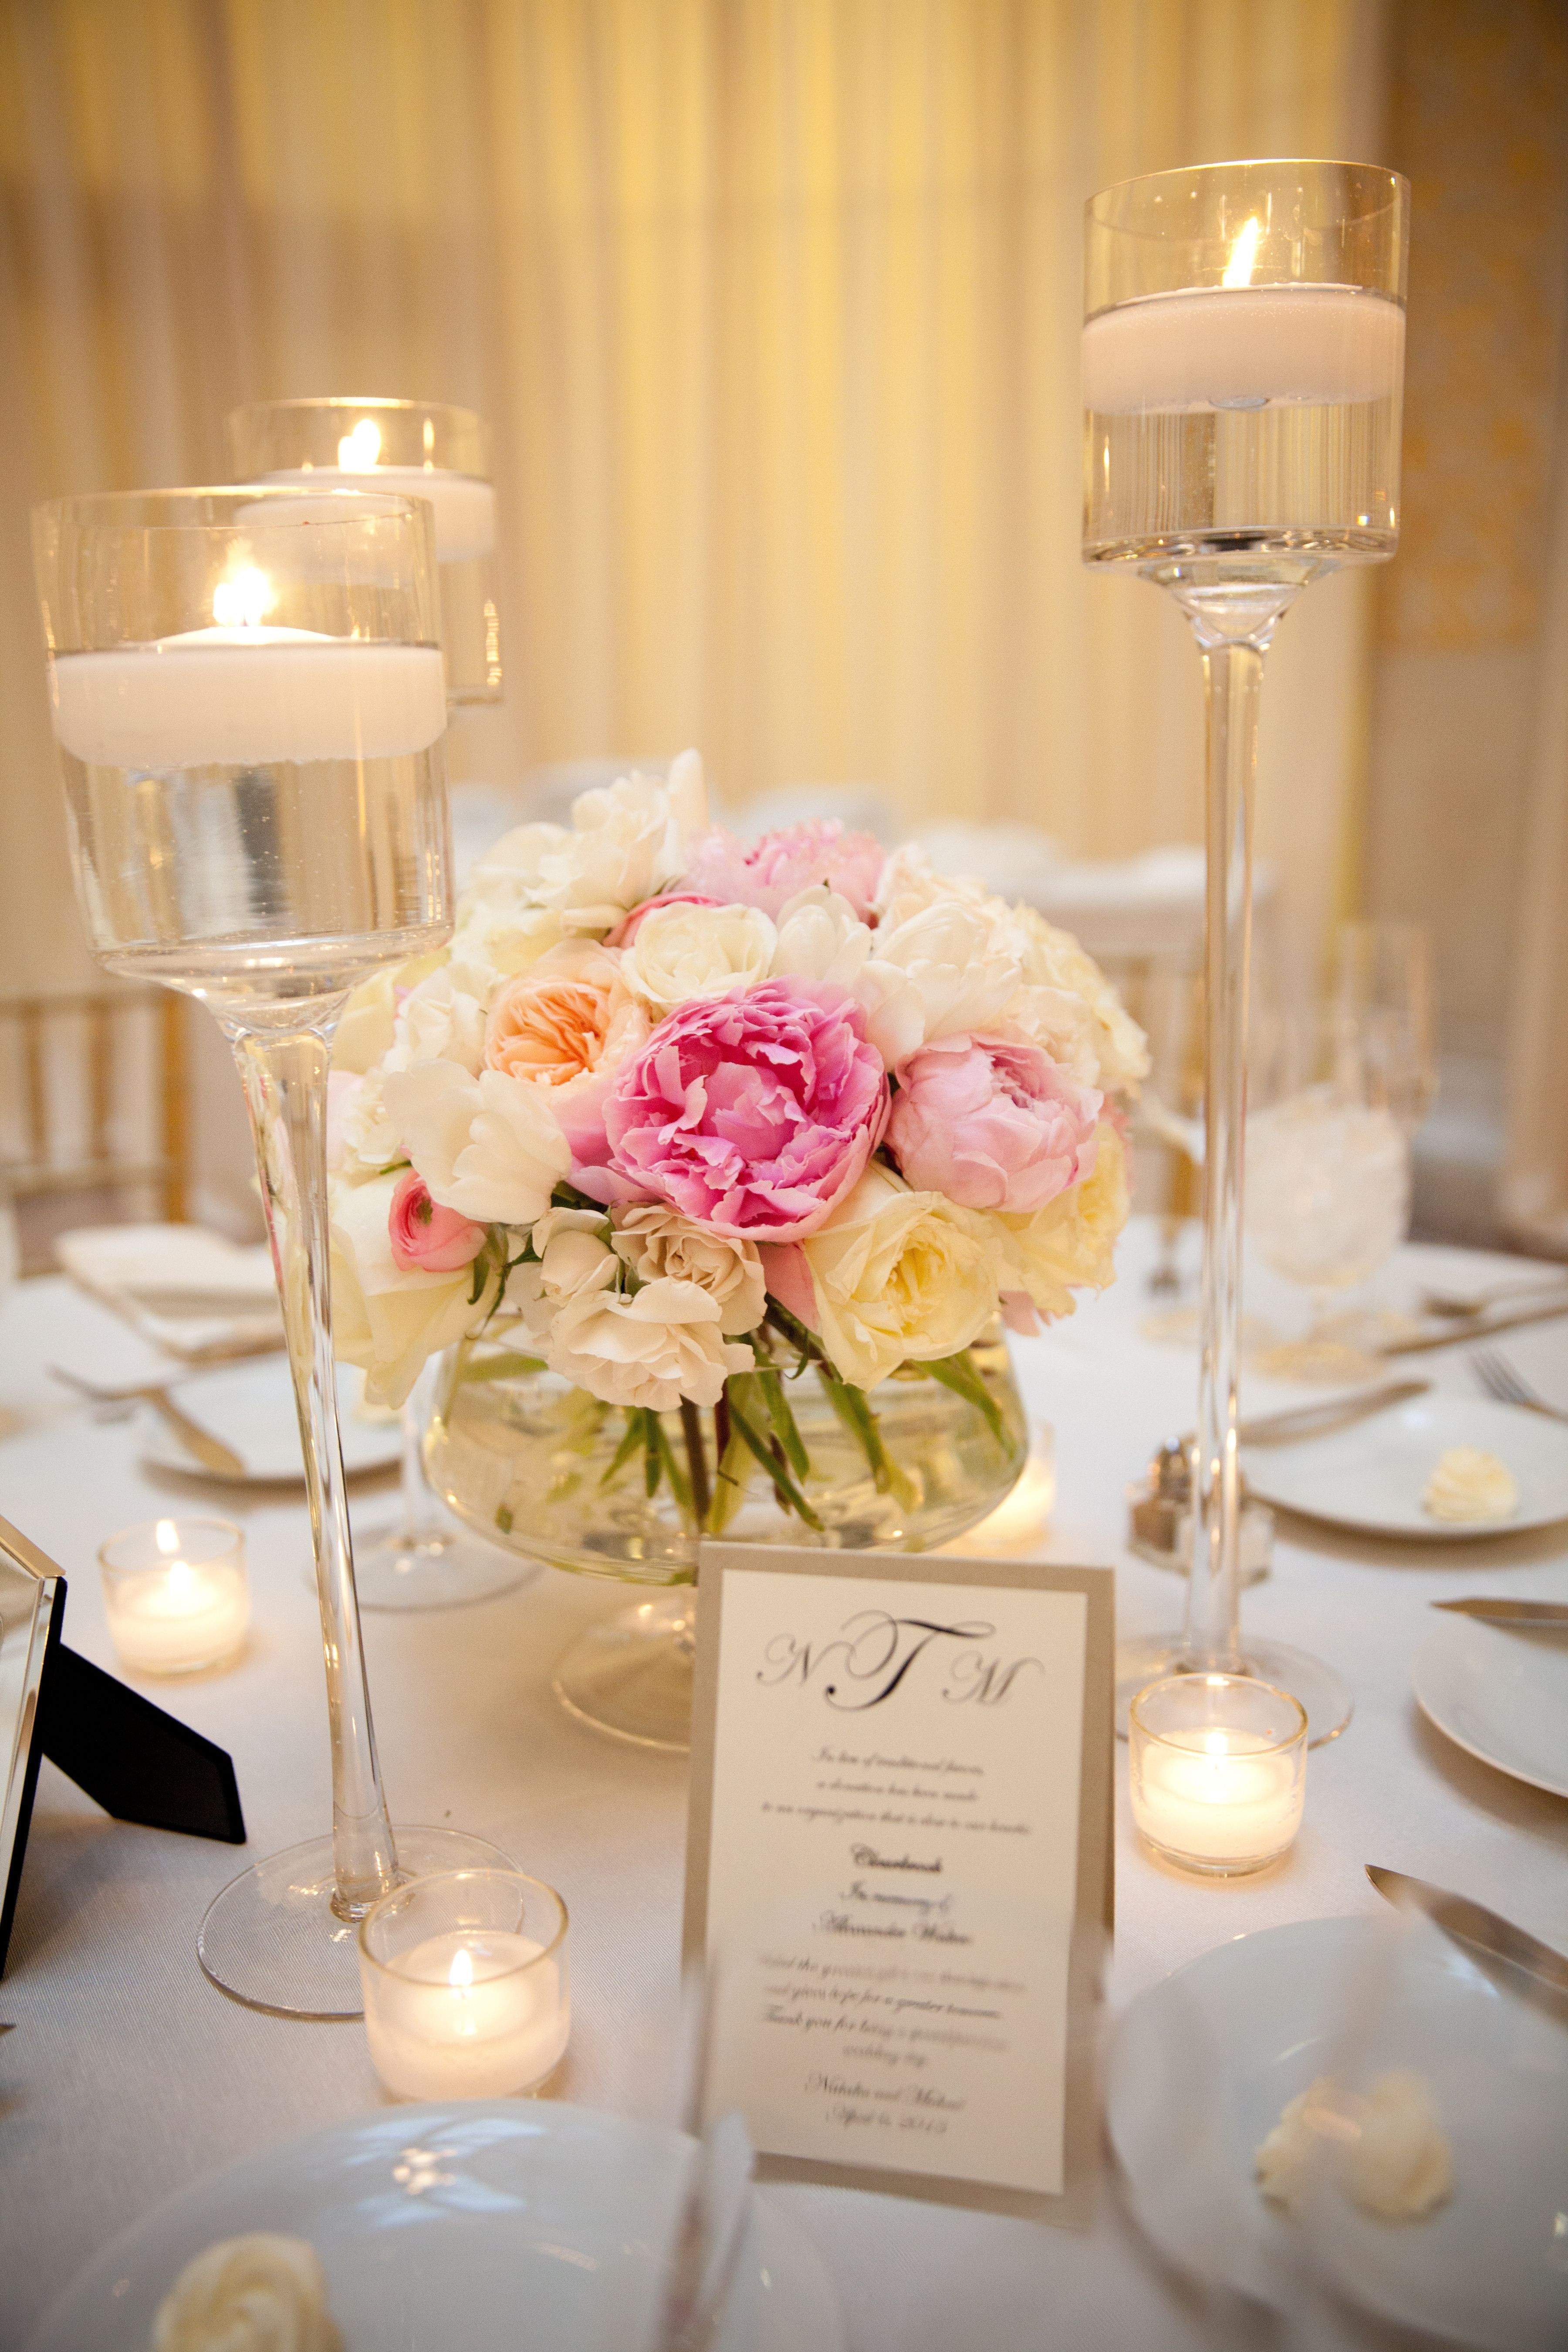 tall floating candle vases of fabulous floating candle ideas for weddings wedding flowers pertaining to candles very similar to what im thinking the smaller centerpiece arrangement will look